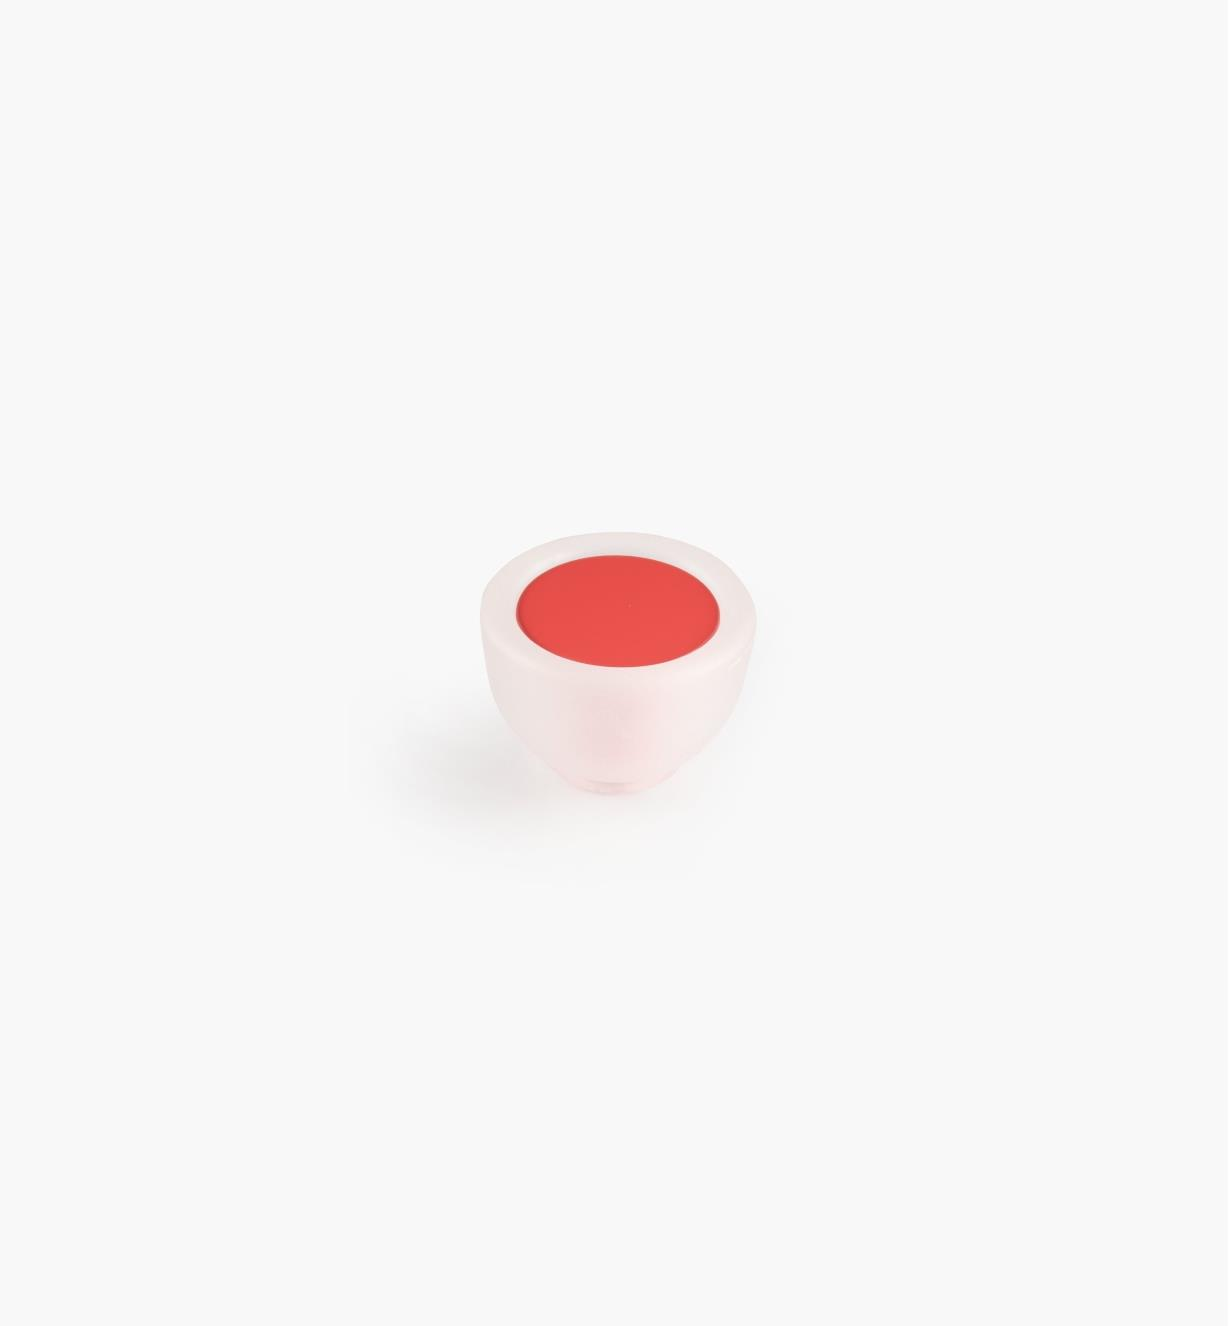 00W5430 - 35mm Bungee Round Knob, Red